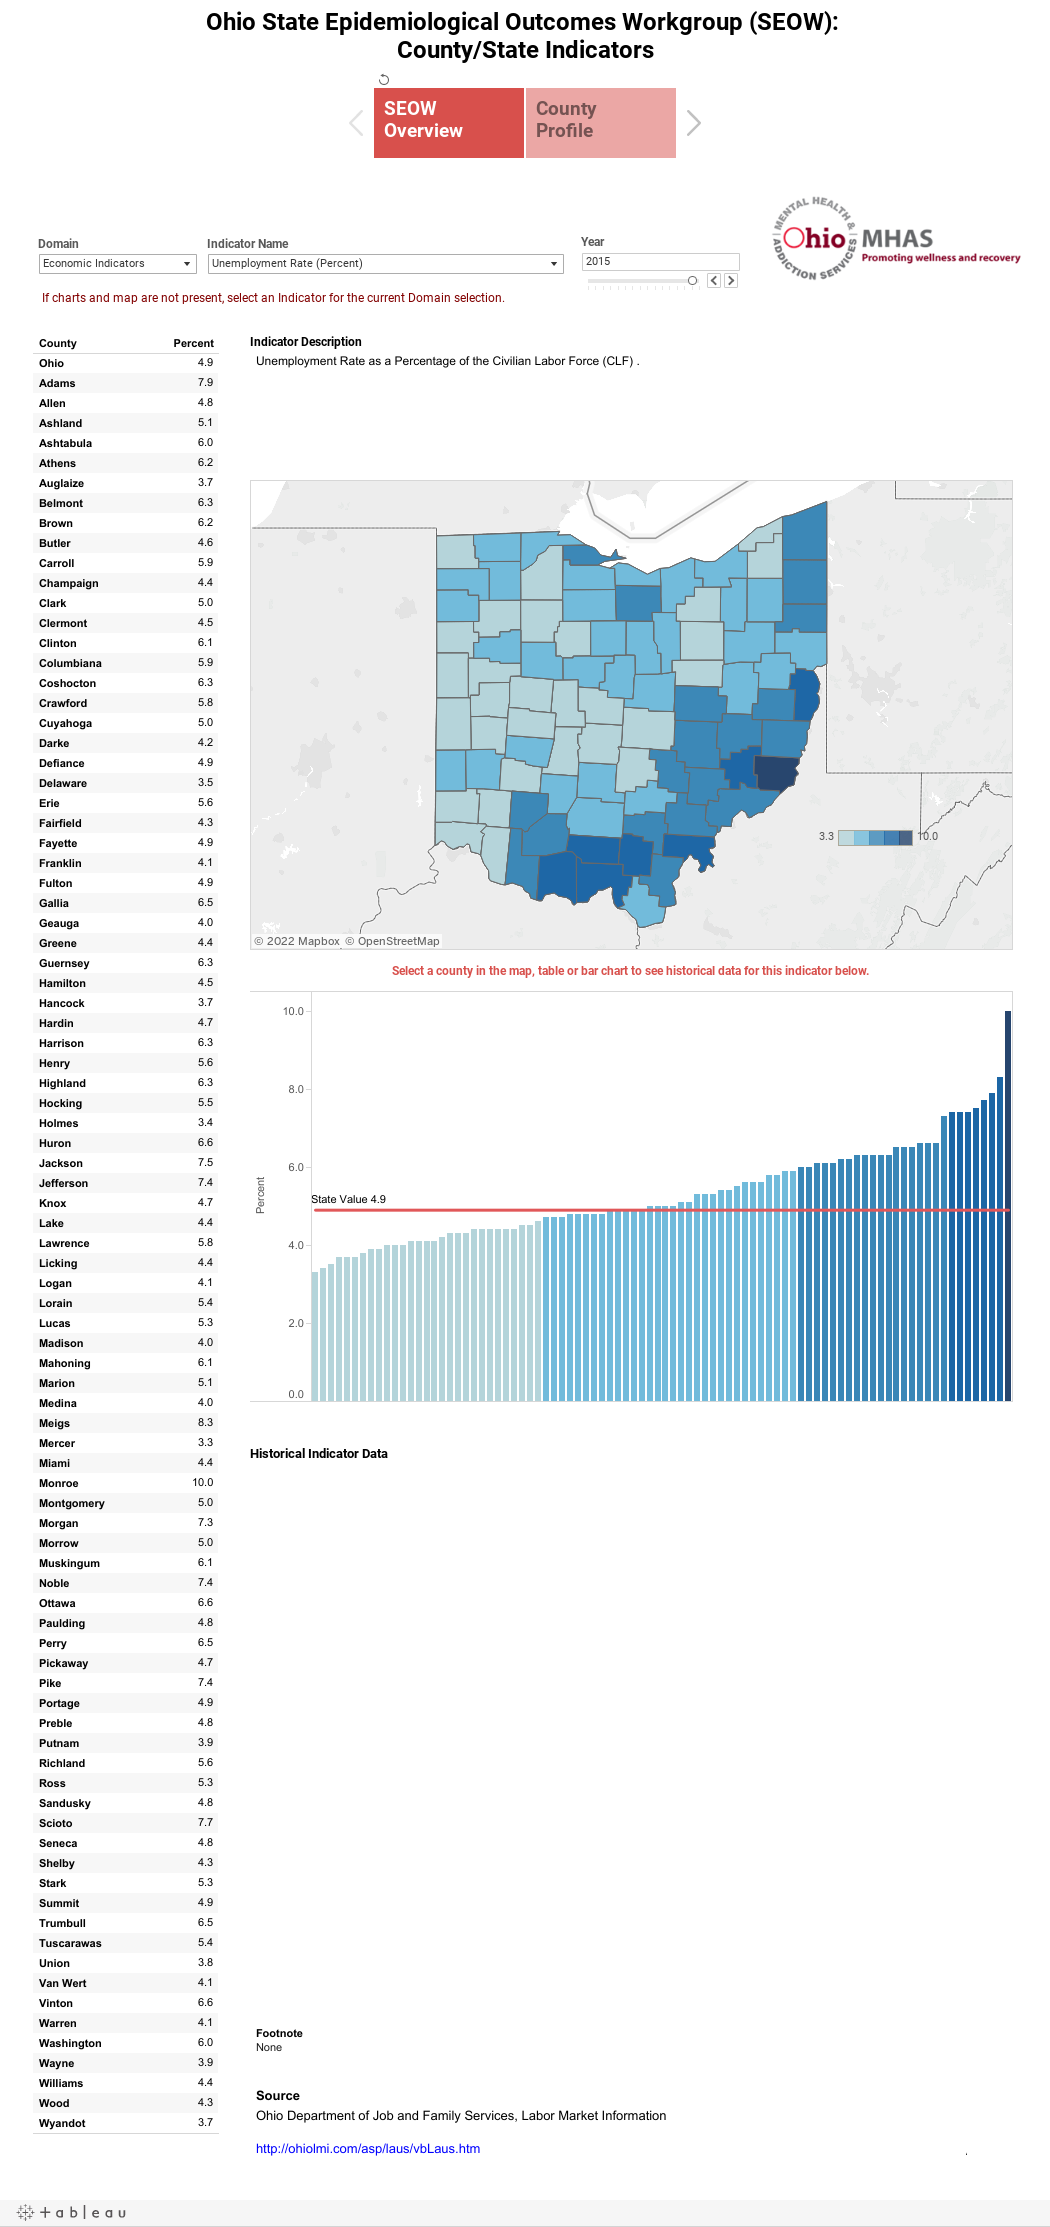 https://public.tableau.com/static/images/Oh/OhioSEOWTestVizwStory/Story1/1.png